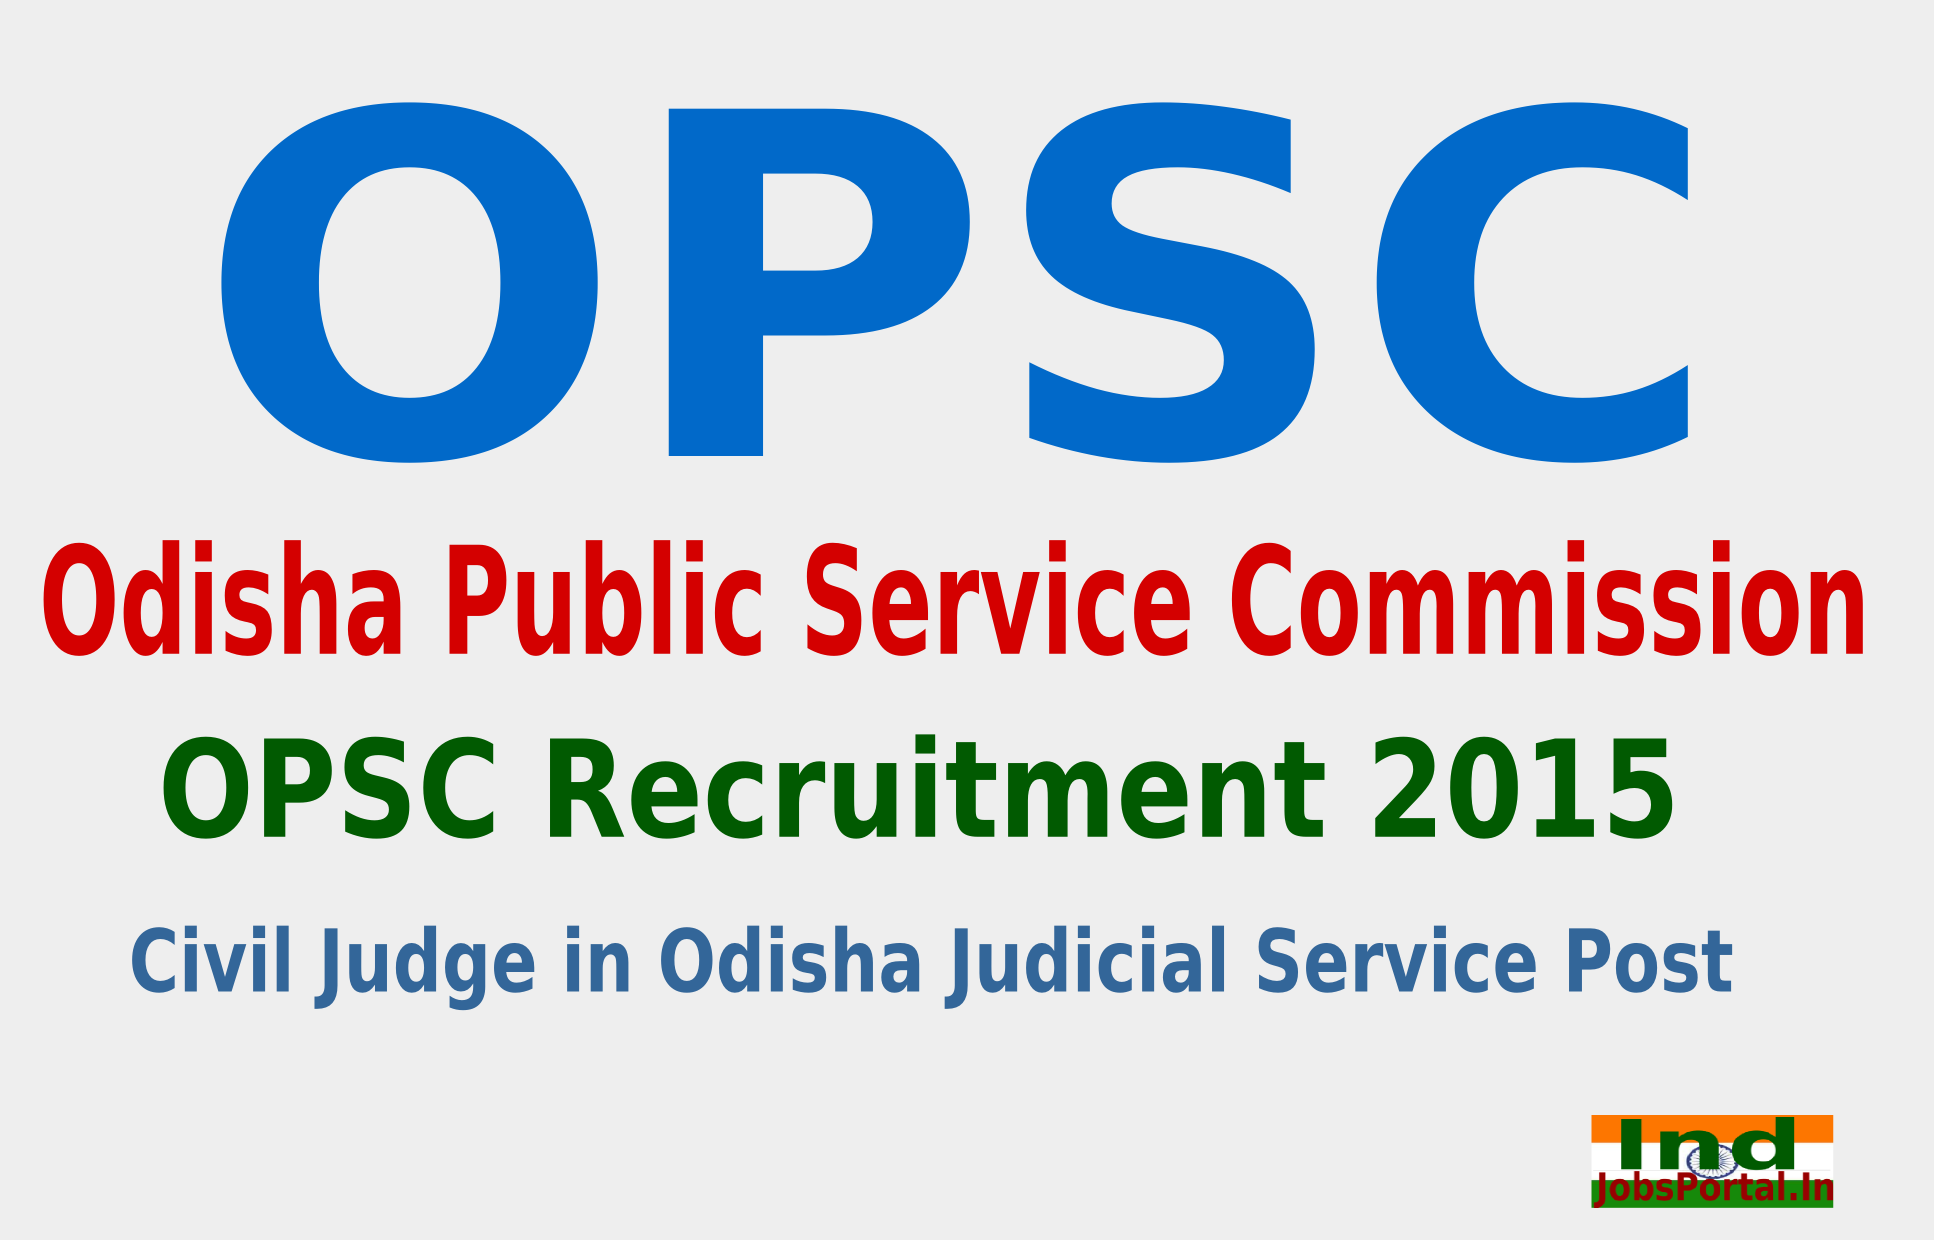 OPSC Recruitment 2015 Online Application For 69 Civil Judge in Odisha Judicial Service Post